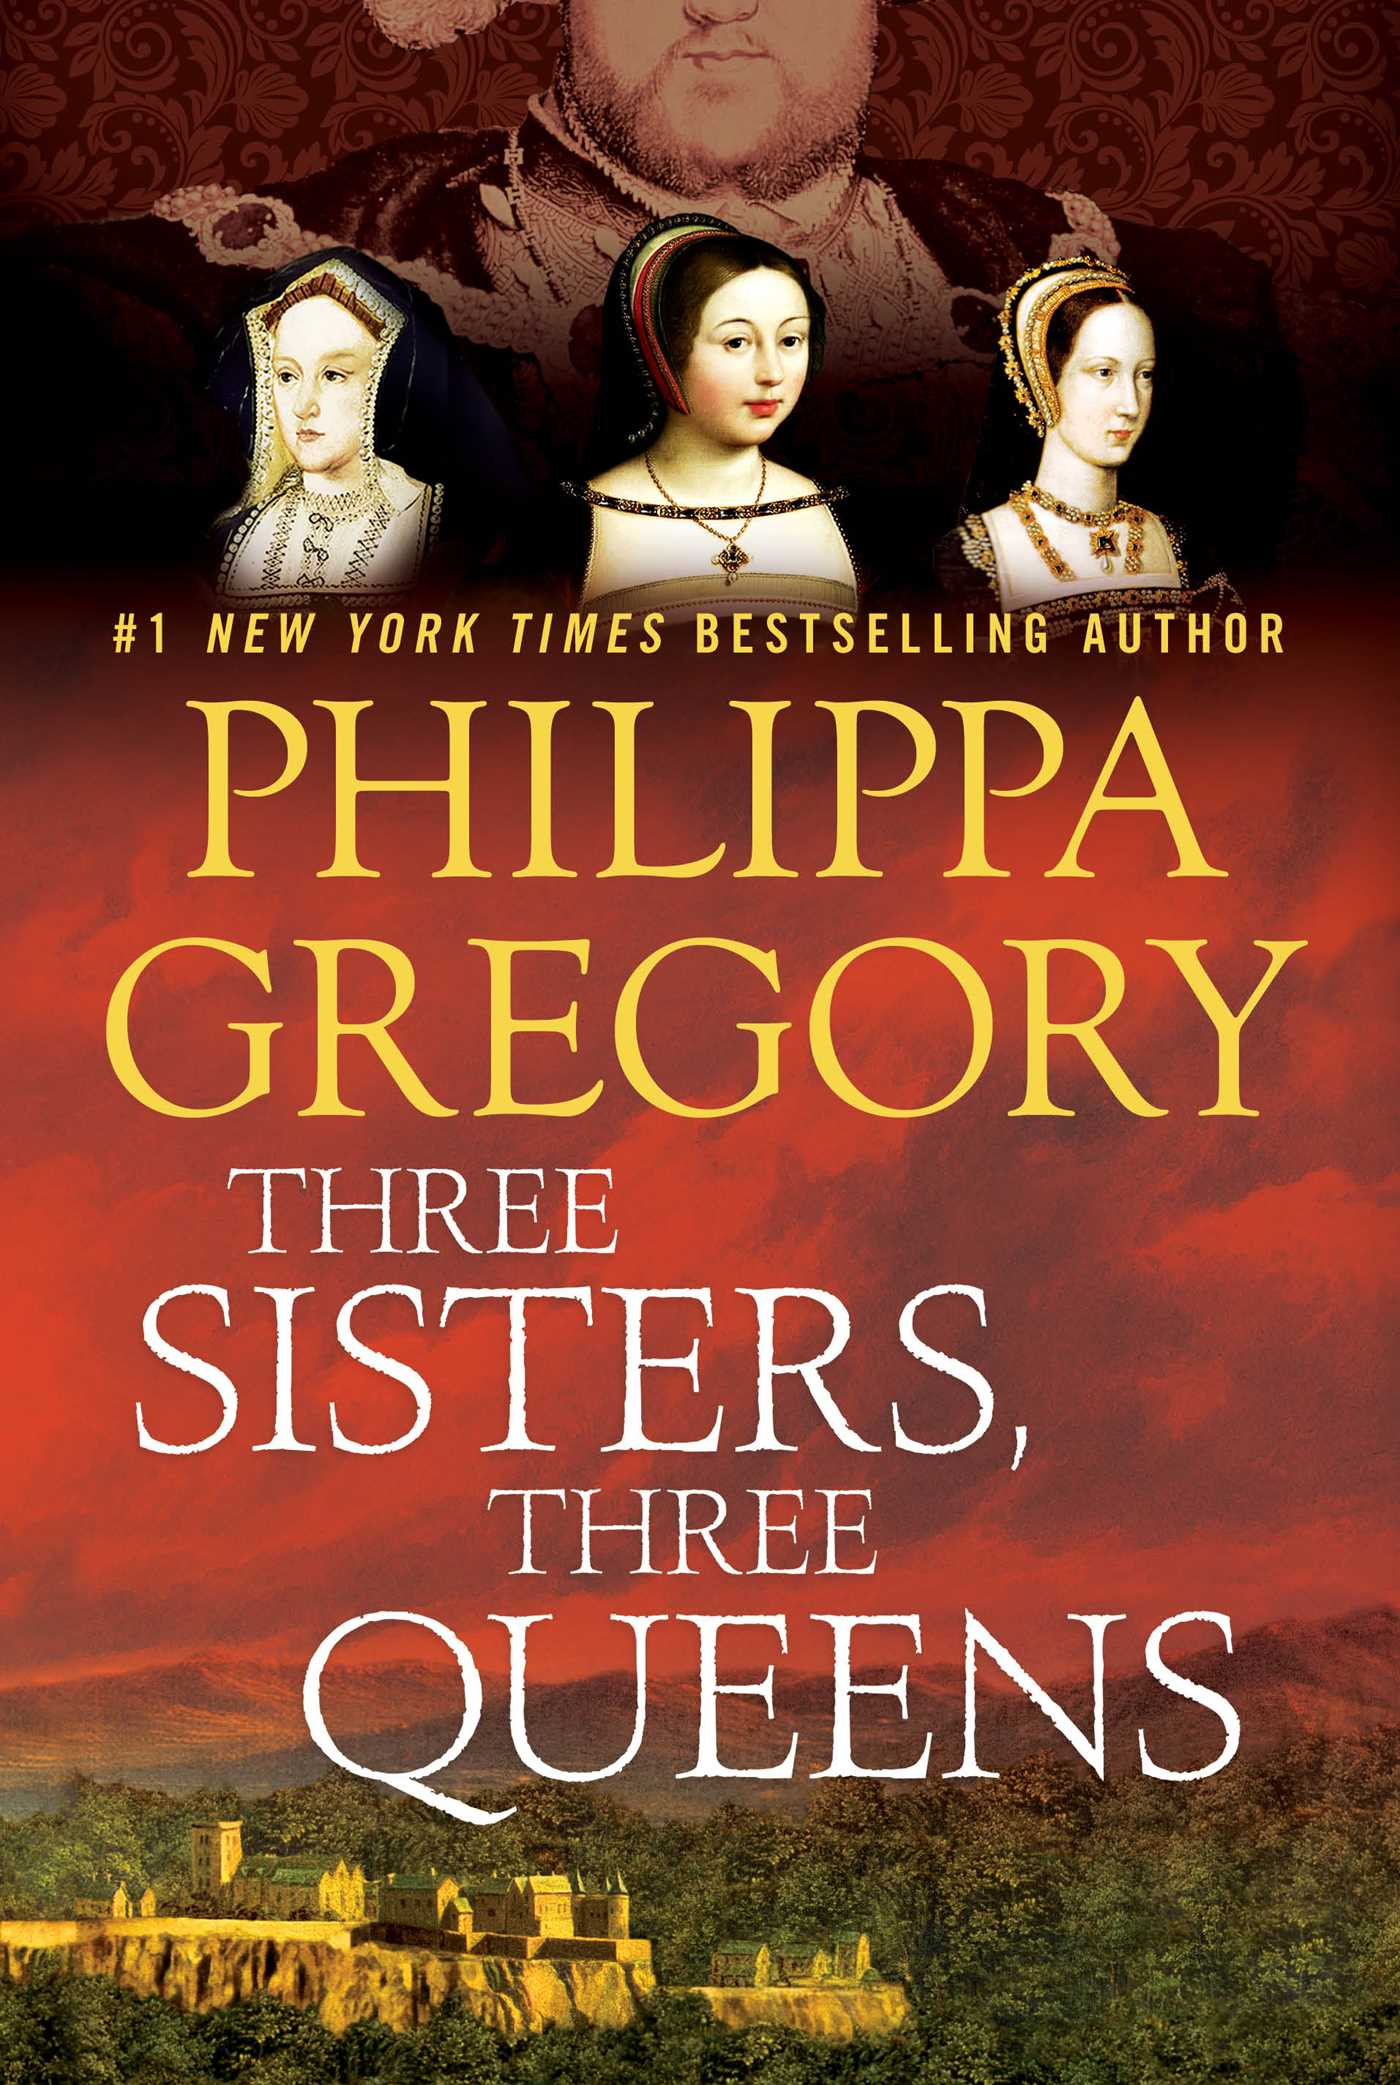 Three sisters three queens 9781476758572 hr